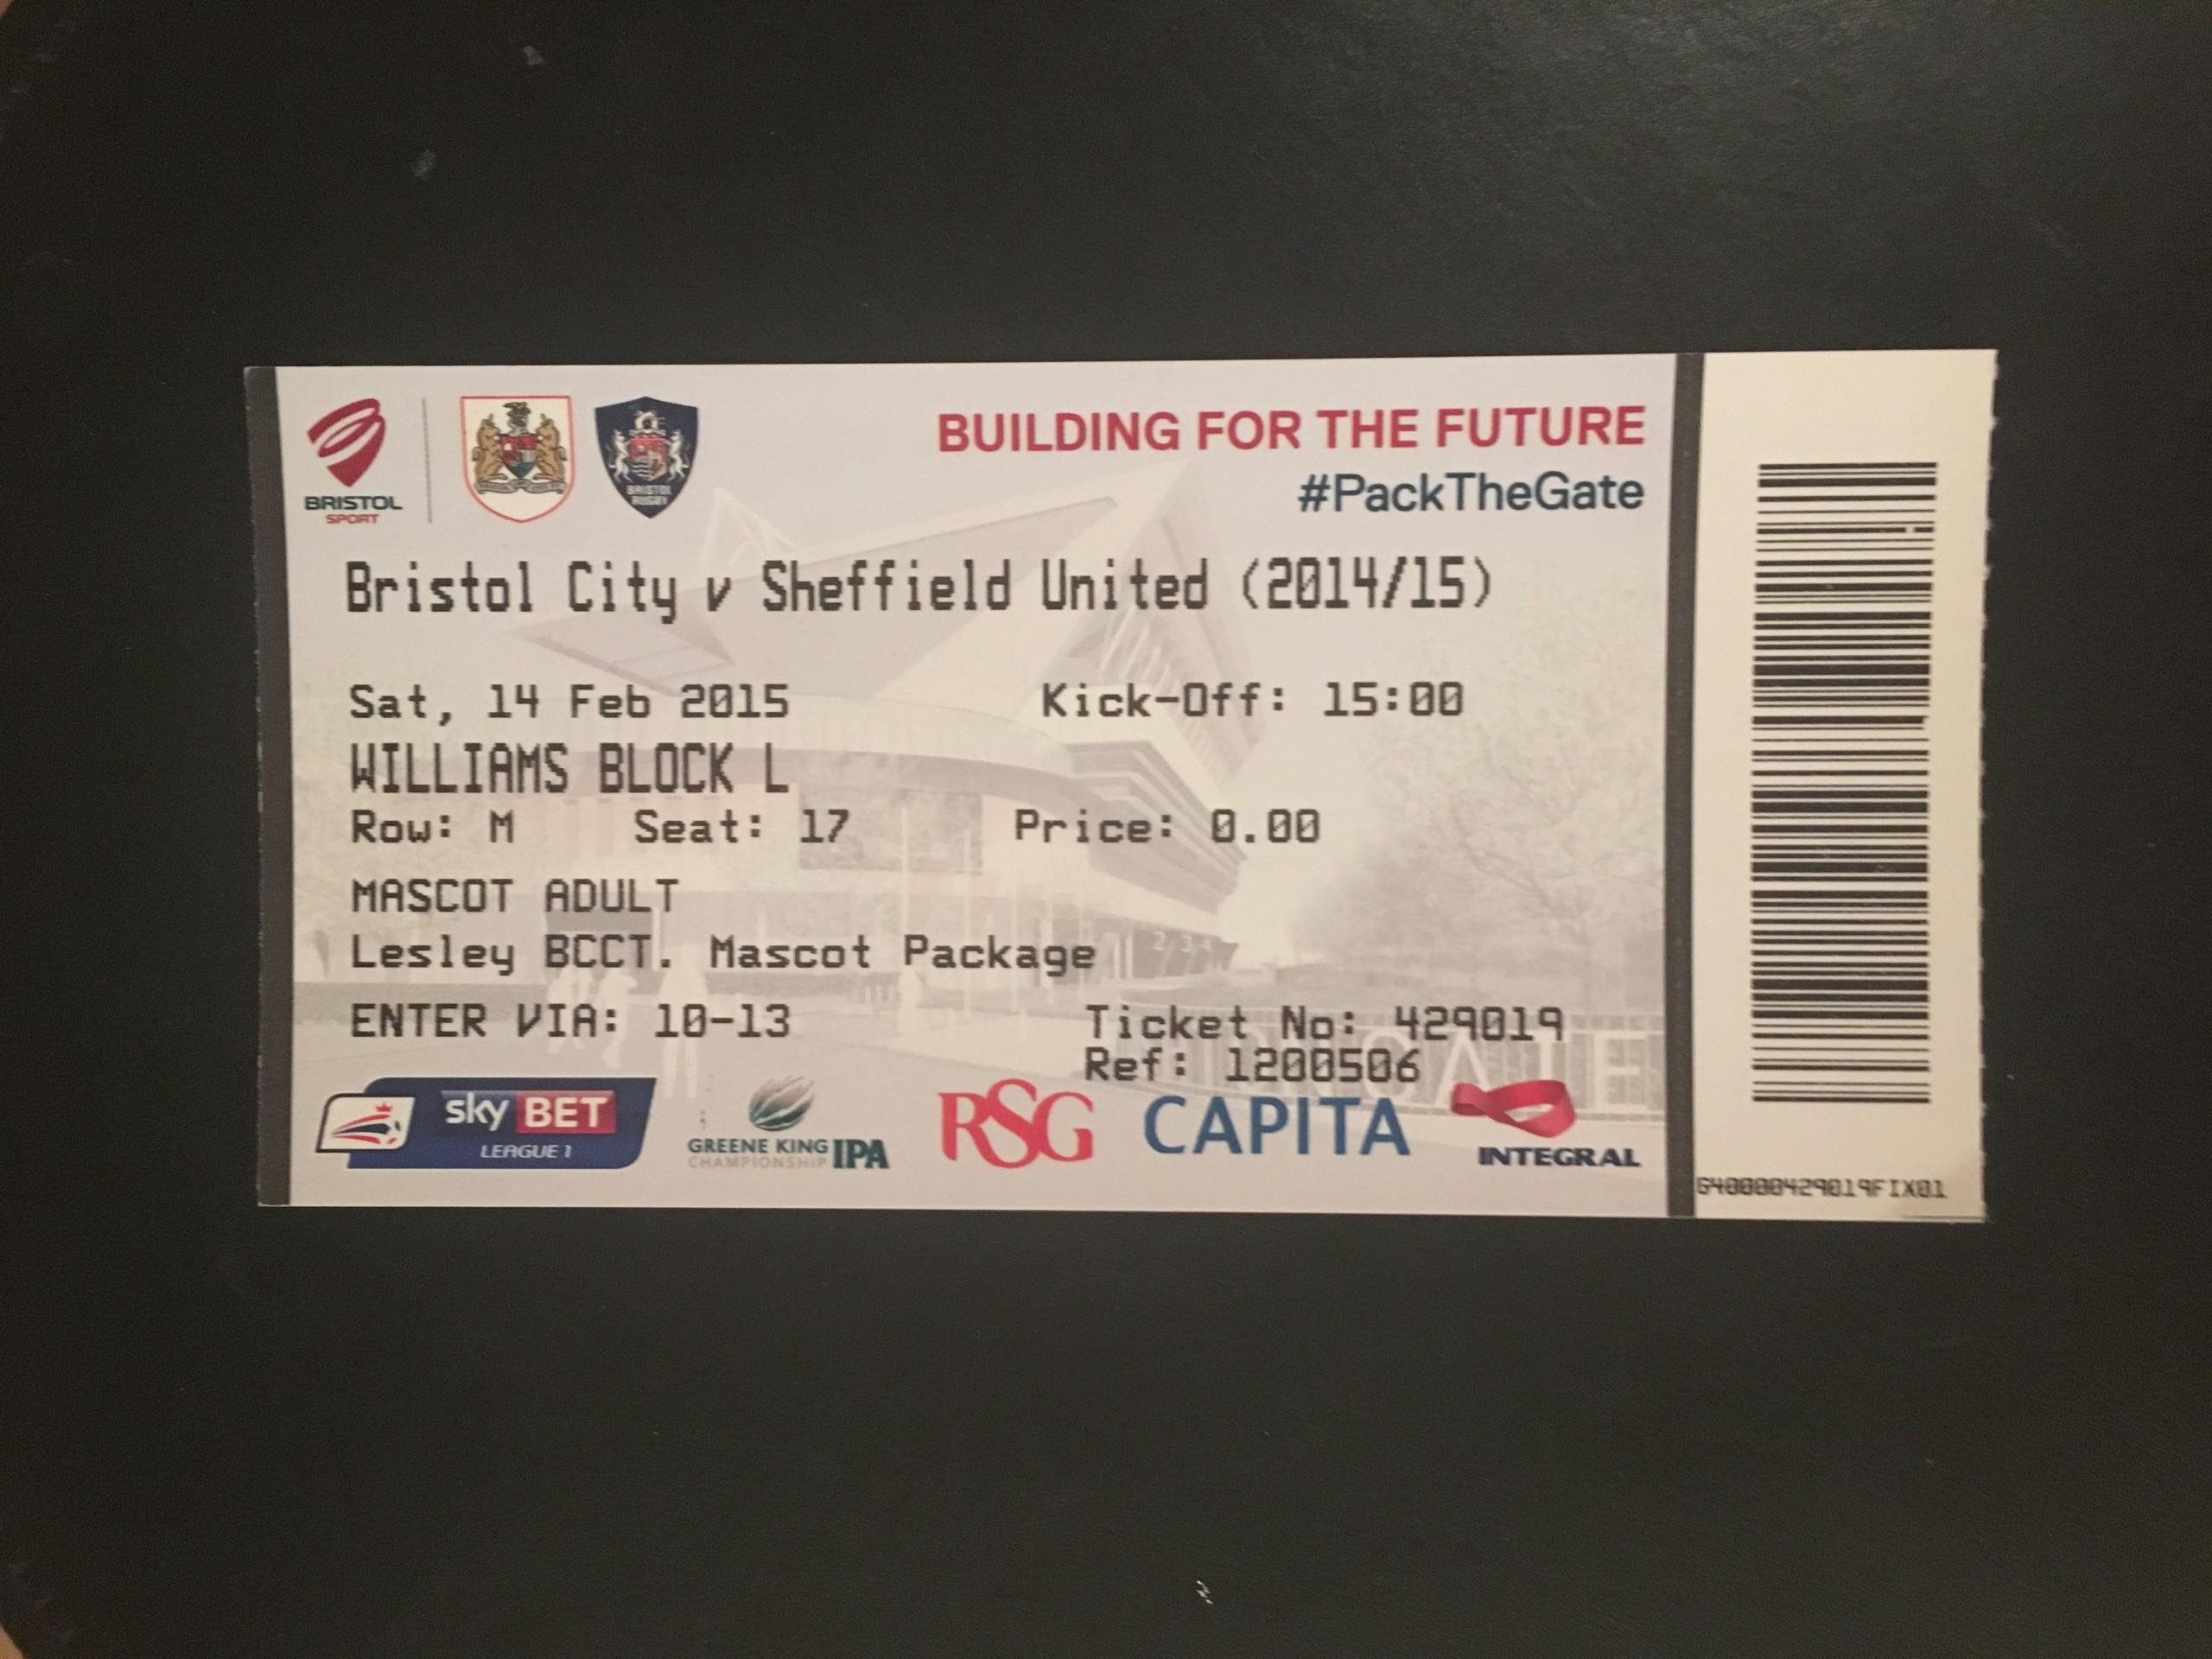 Bristol City v Sheffield United 14-02-2015 Ticket